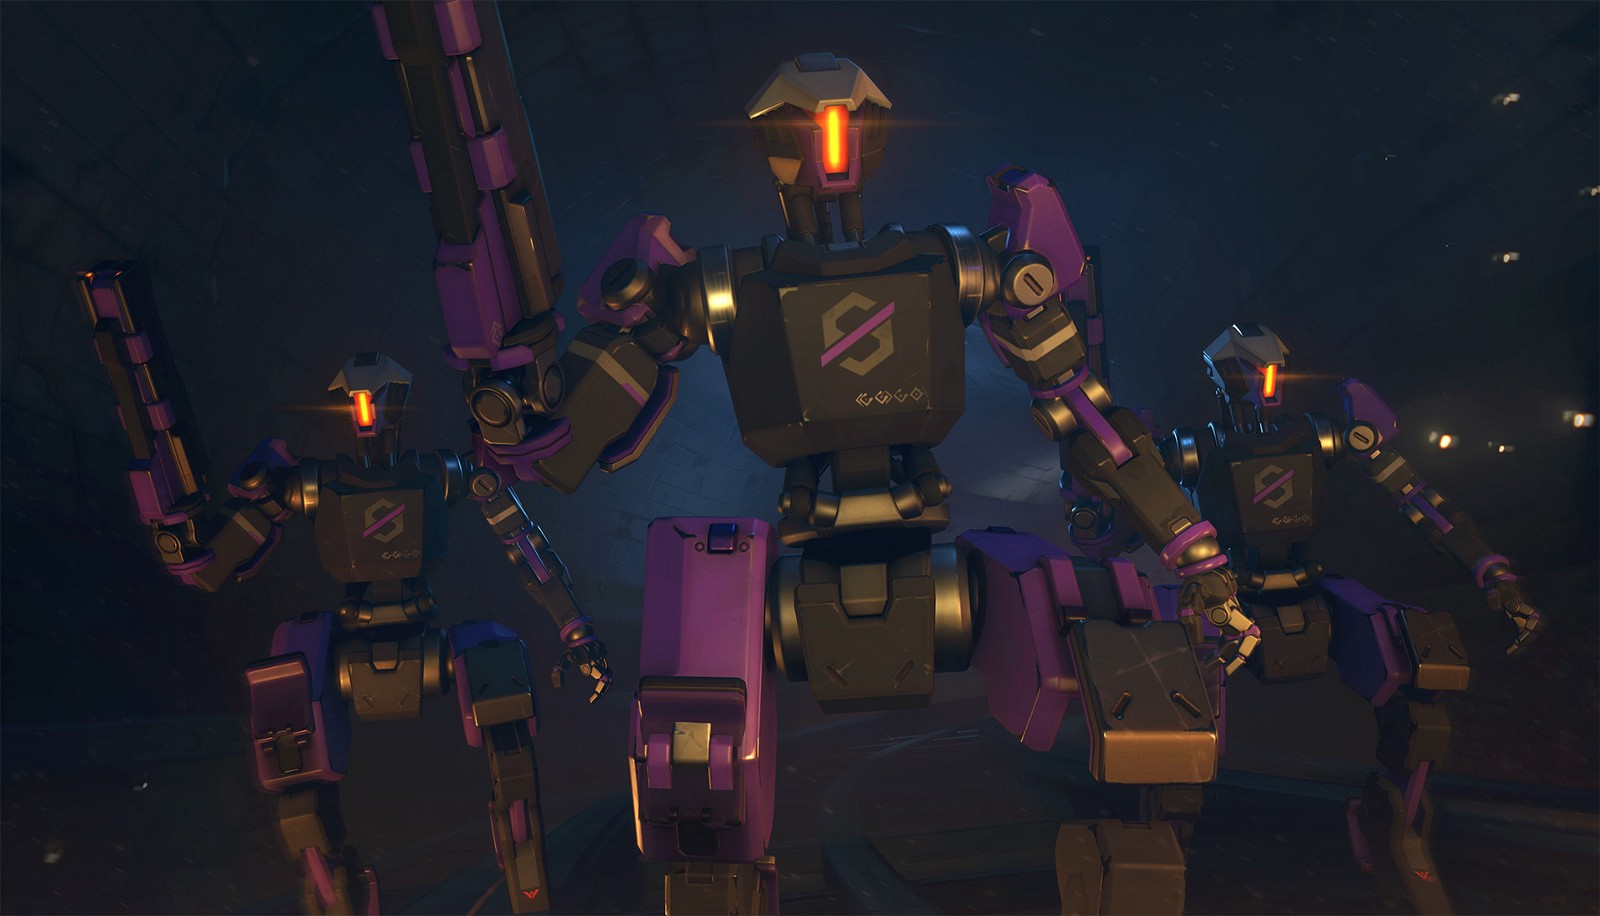 Overwatch Wallpaper Cute Sprays Overwatch Uprising Null Sector Highpoly Models